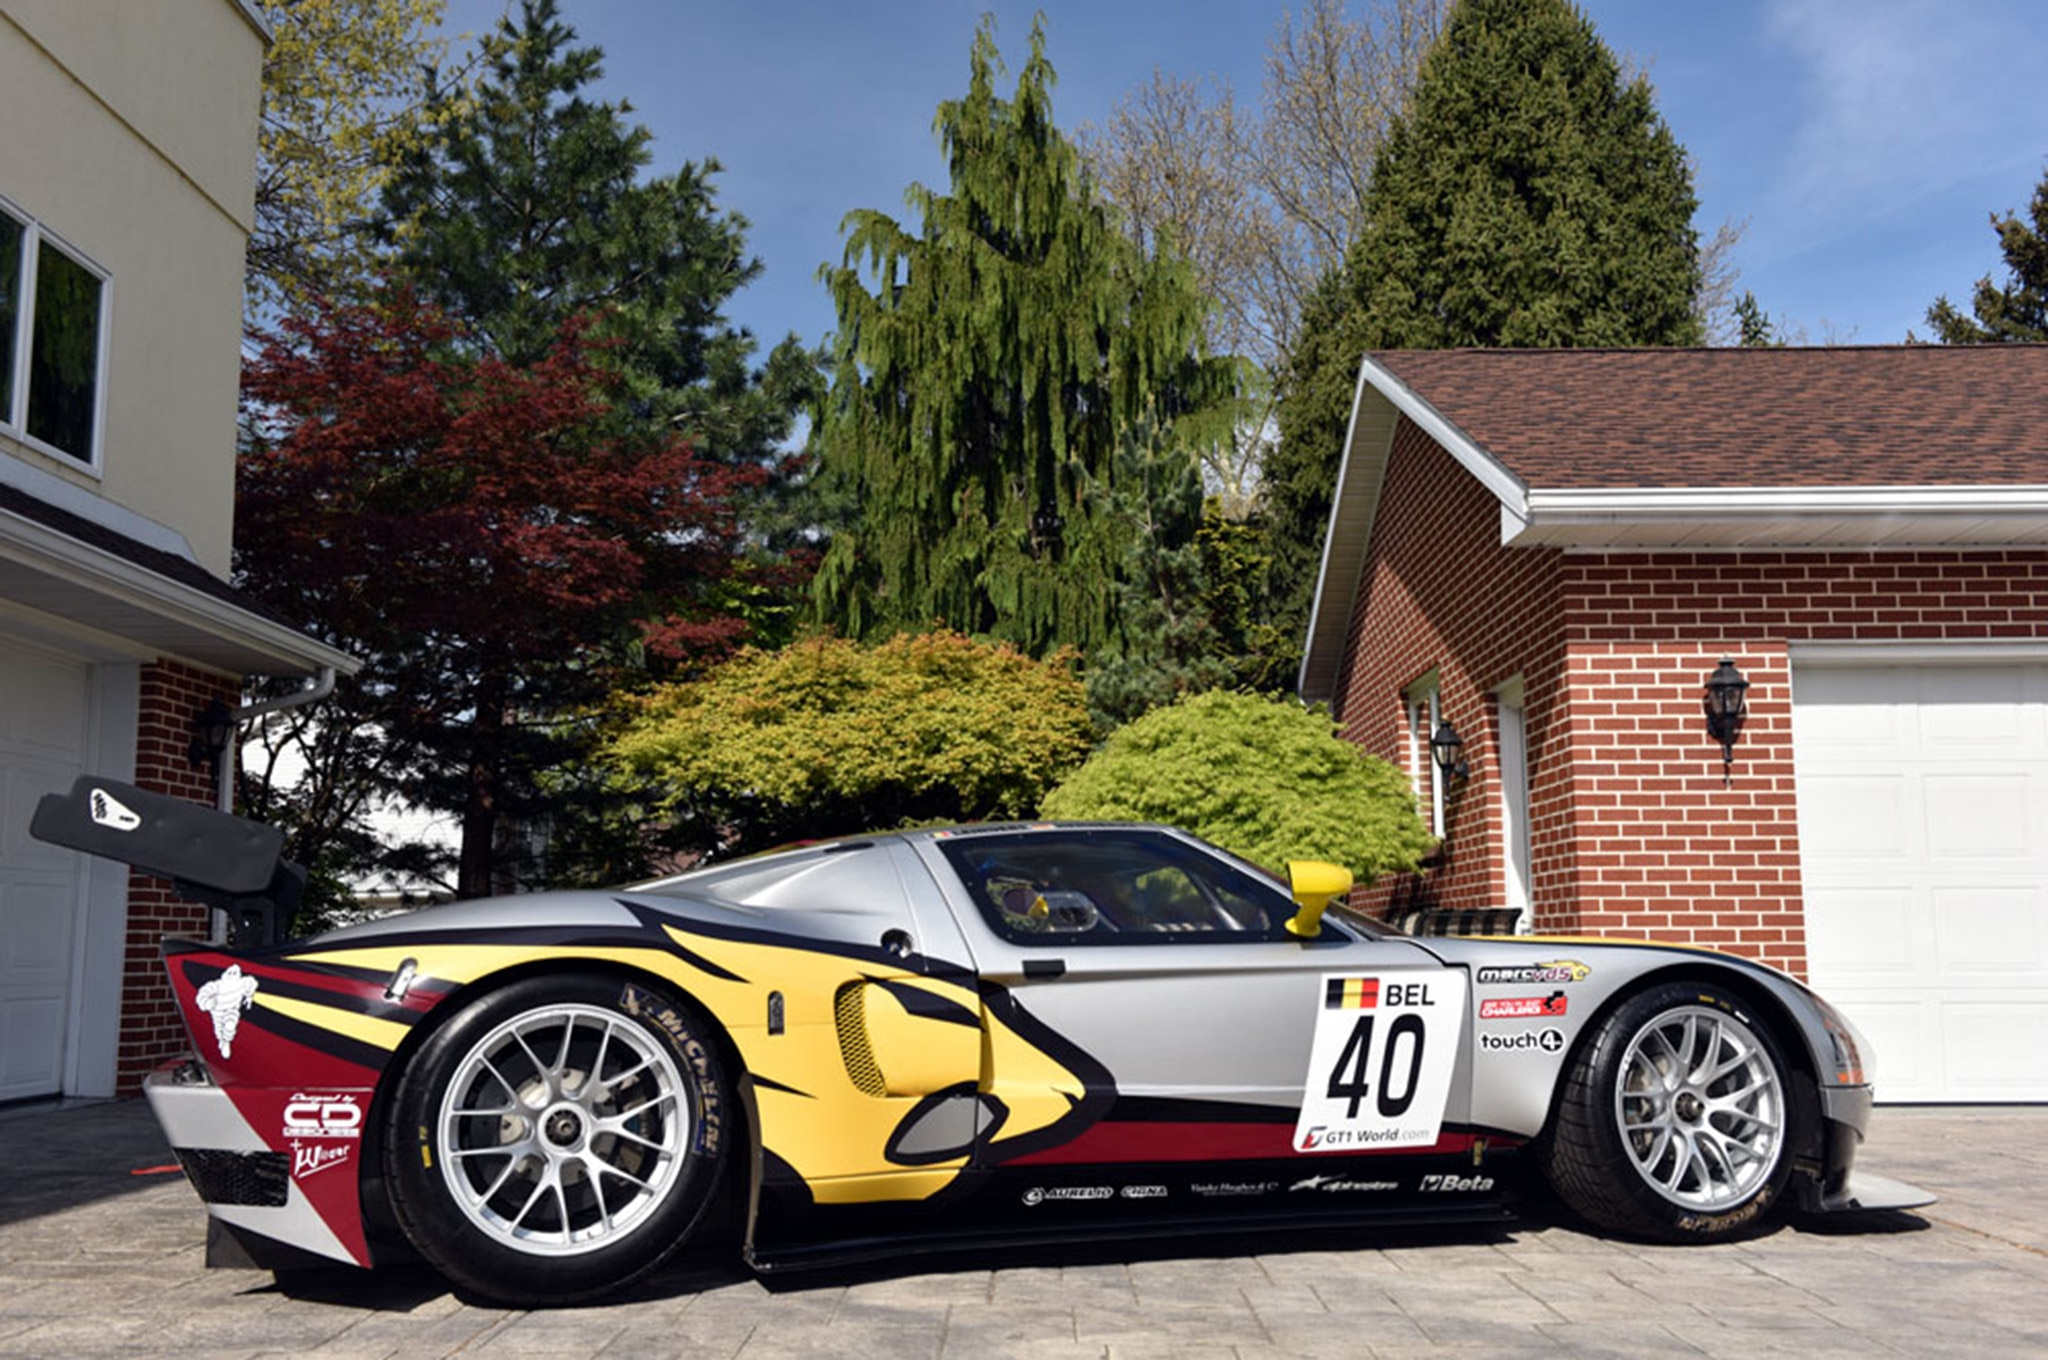 e of Four Matech Ford GT Race Cars Up for Sale on eBay